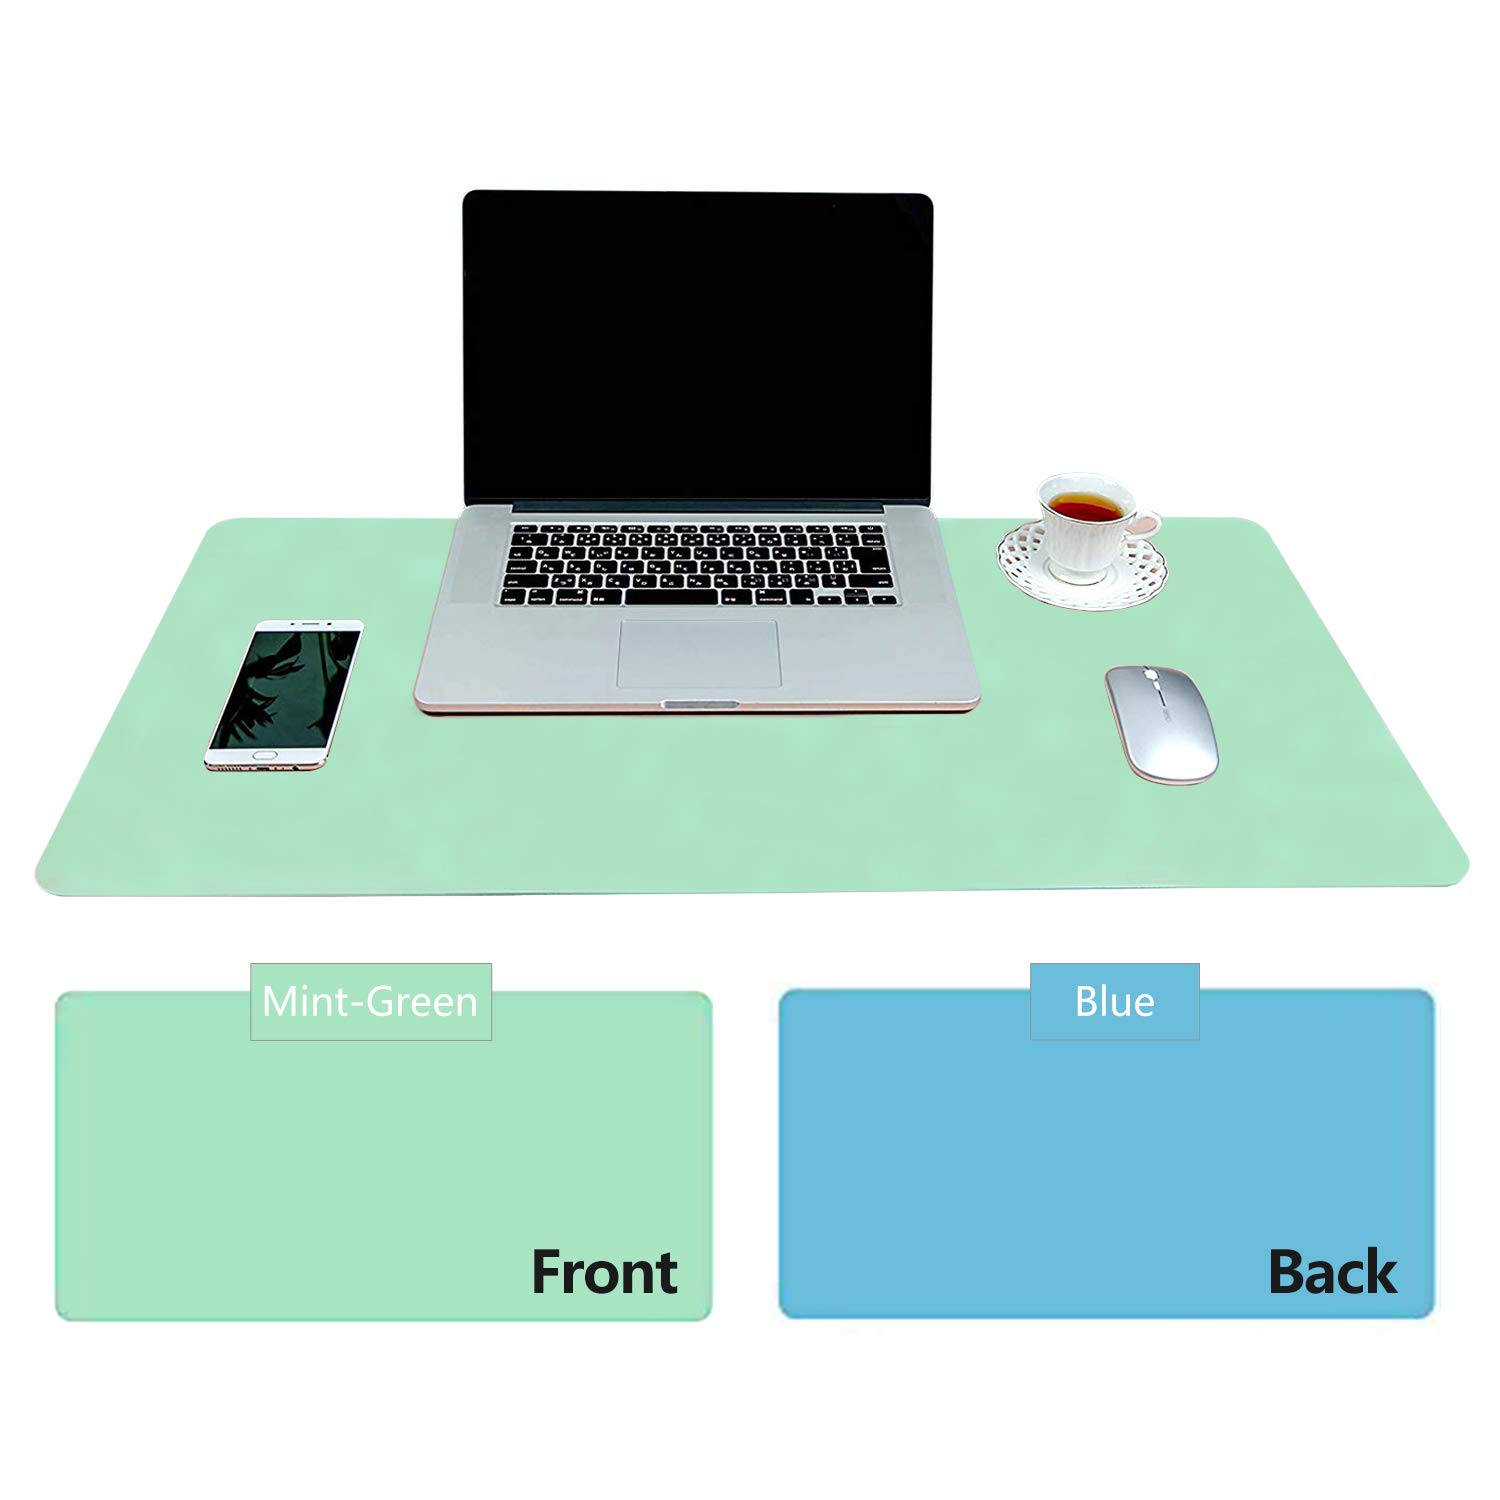 Practical Office Desk Pad Protector, Mint Green - Sky Blue Double-Sided Desk Mat – 31.5'' x15.7'' PU Leather Computer Pad Comfortable Writing Surface Desk Accessories for Women - Office/Home Décor